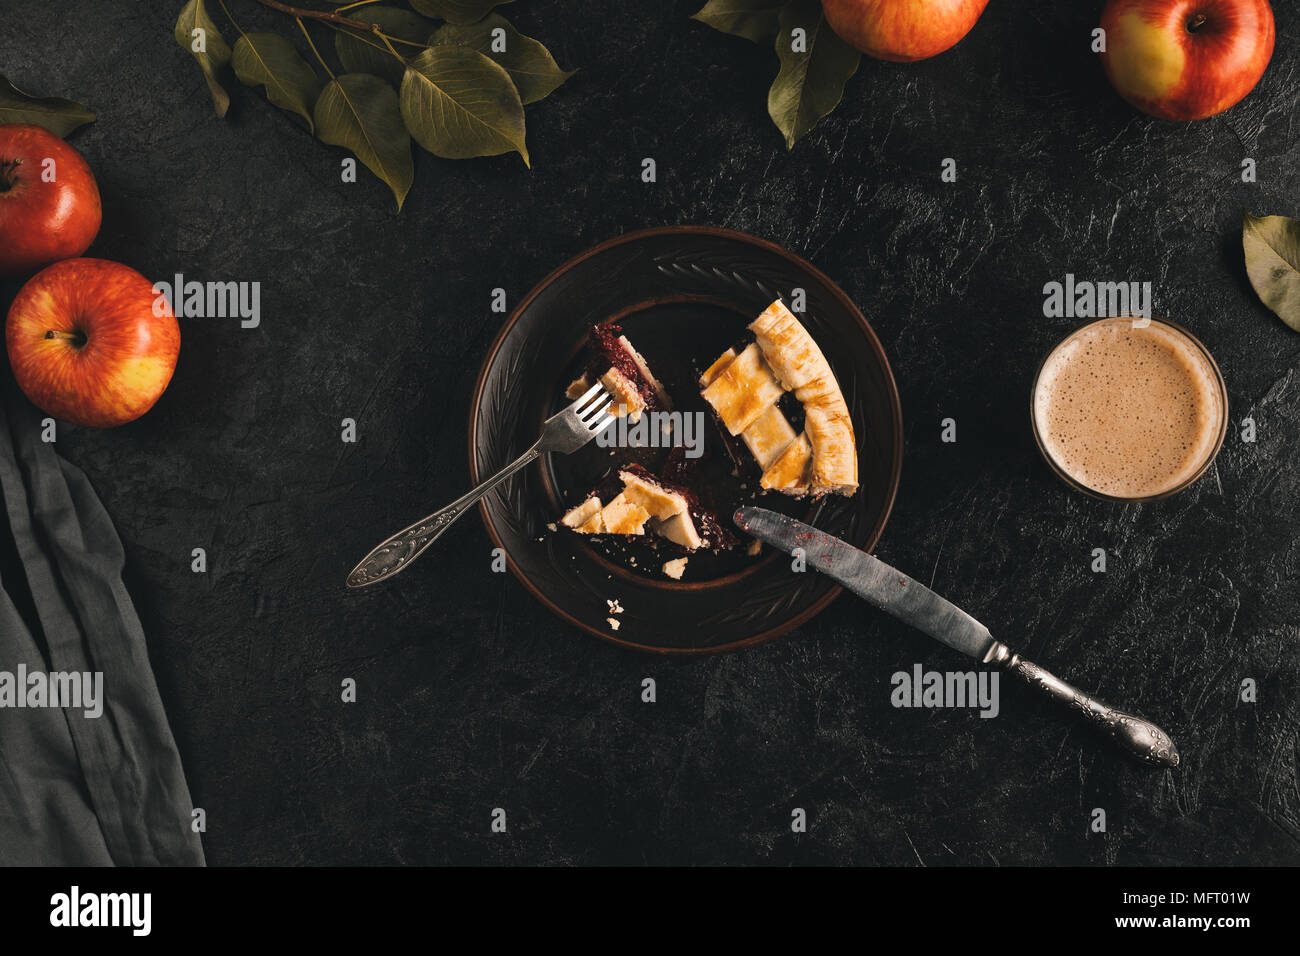 cut piece of apple pie on plate - Stock Image